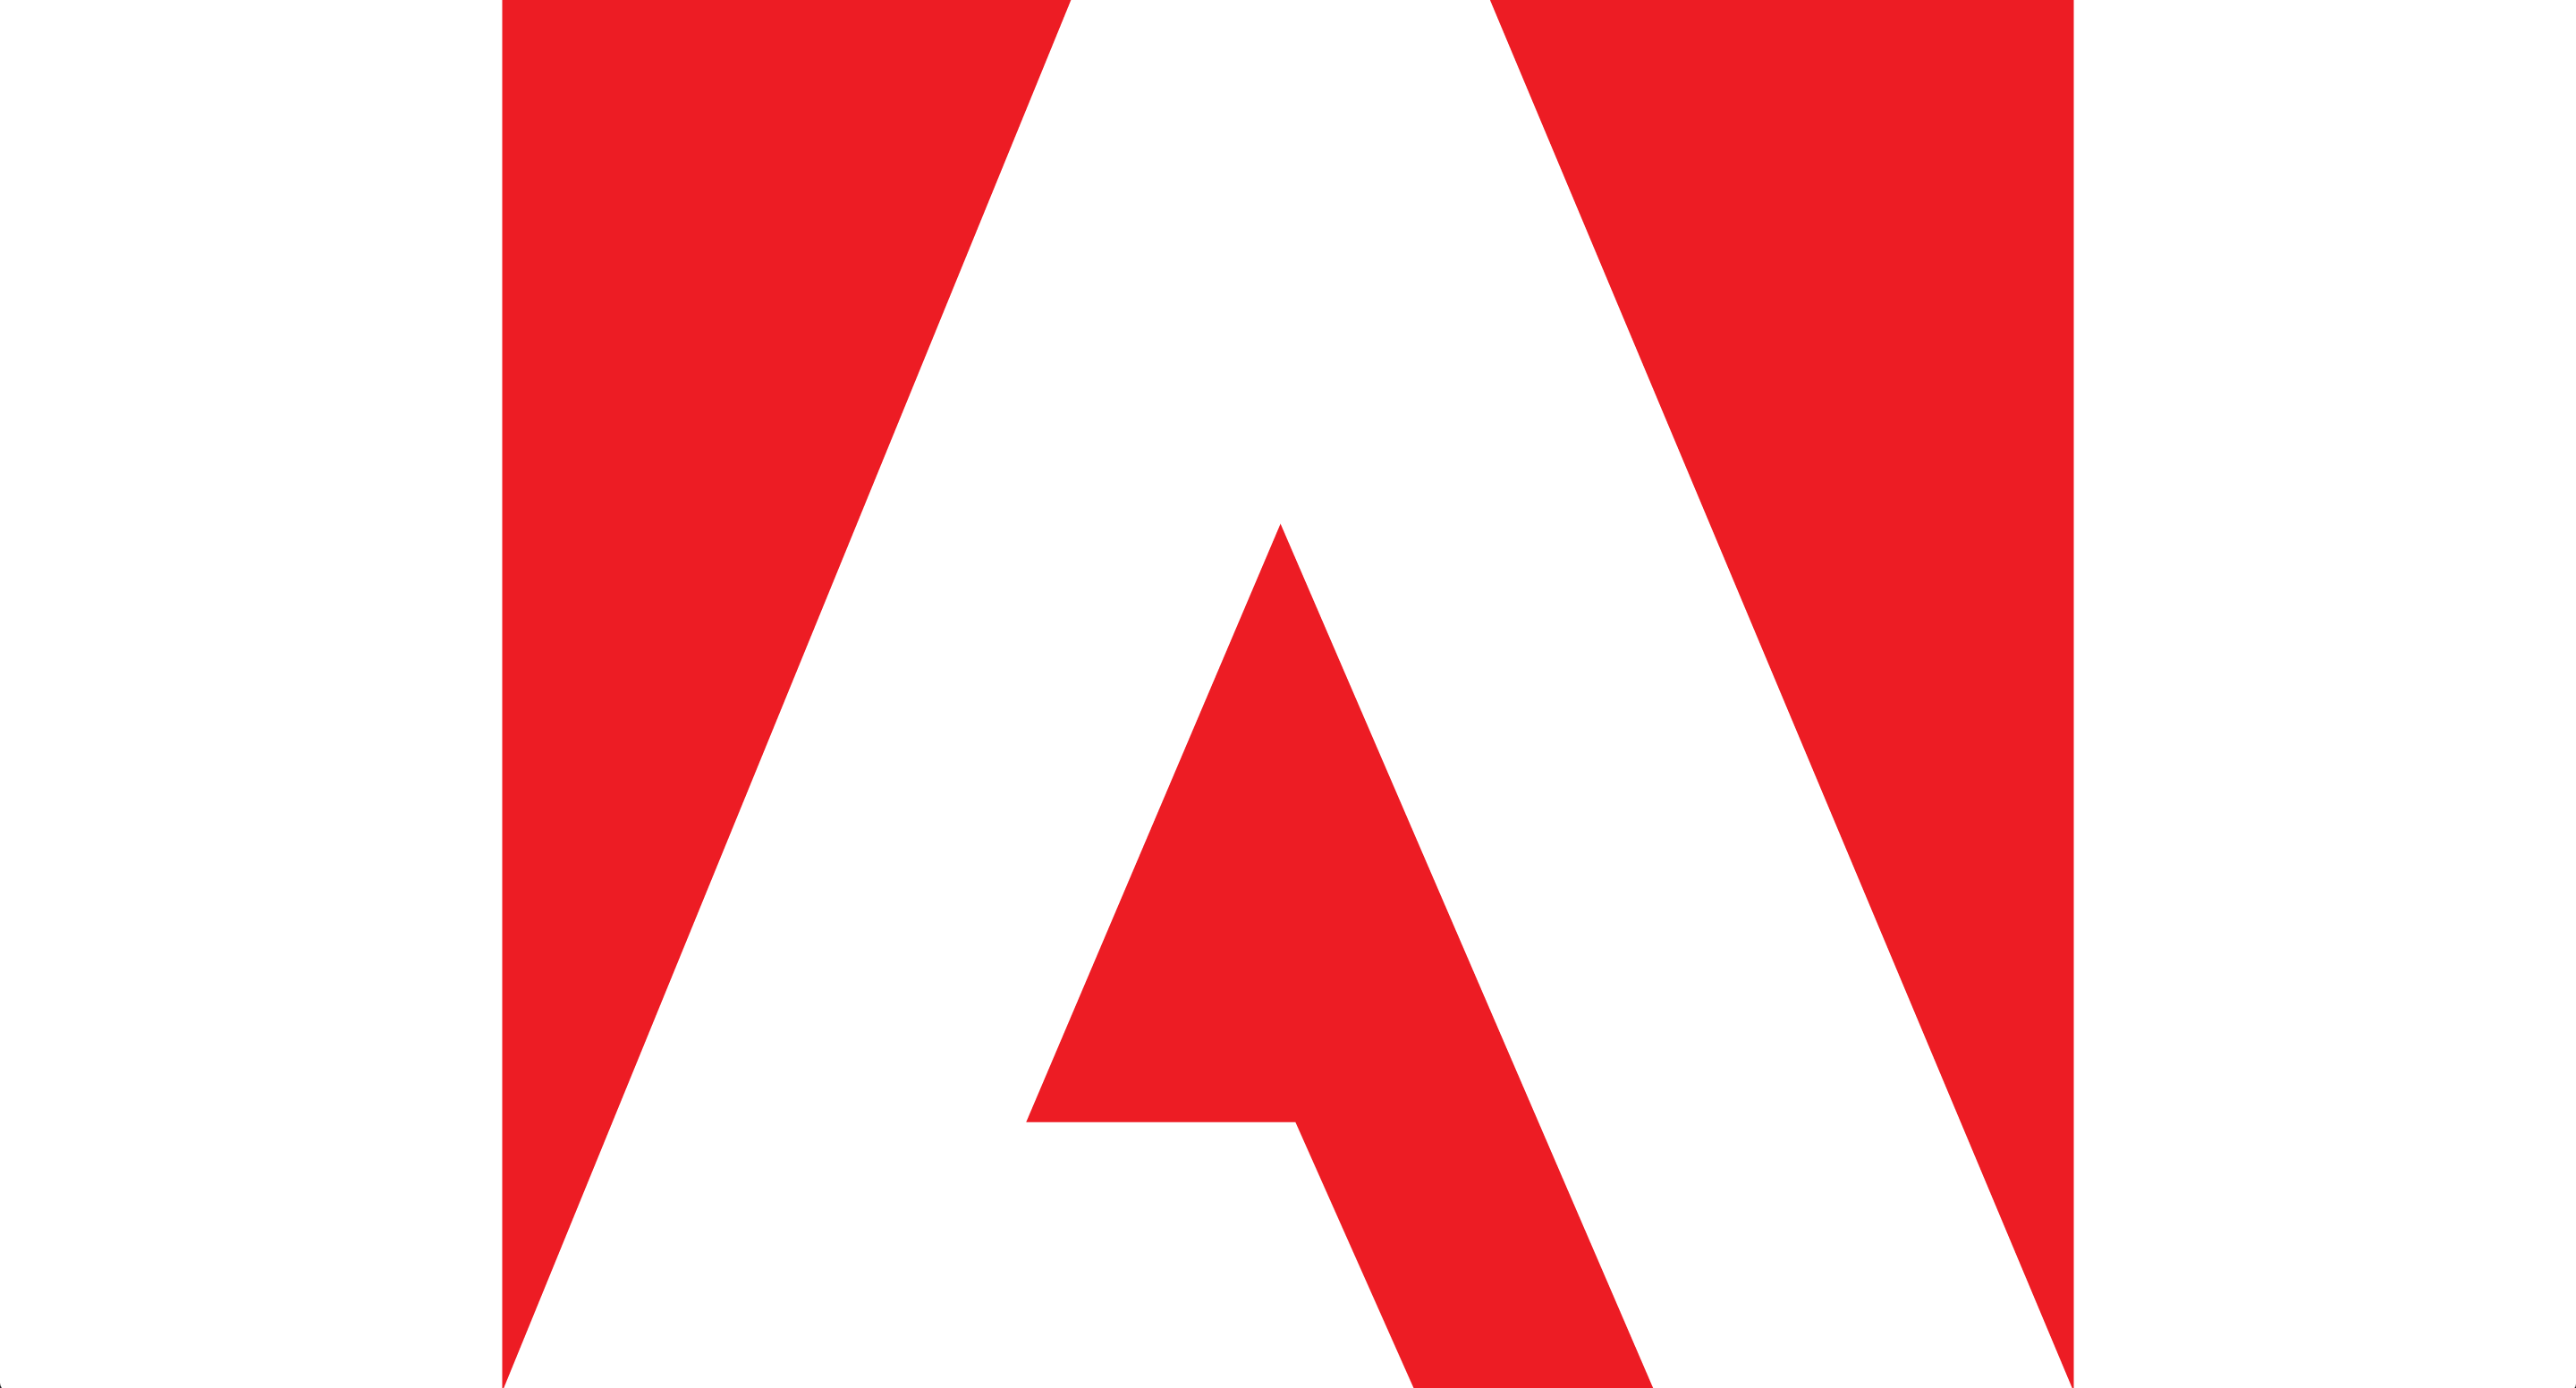 The Adobe Logo Recreated In Svg